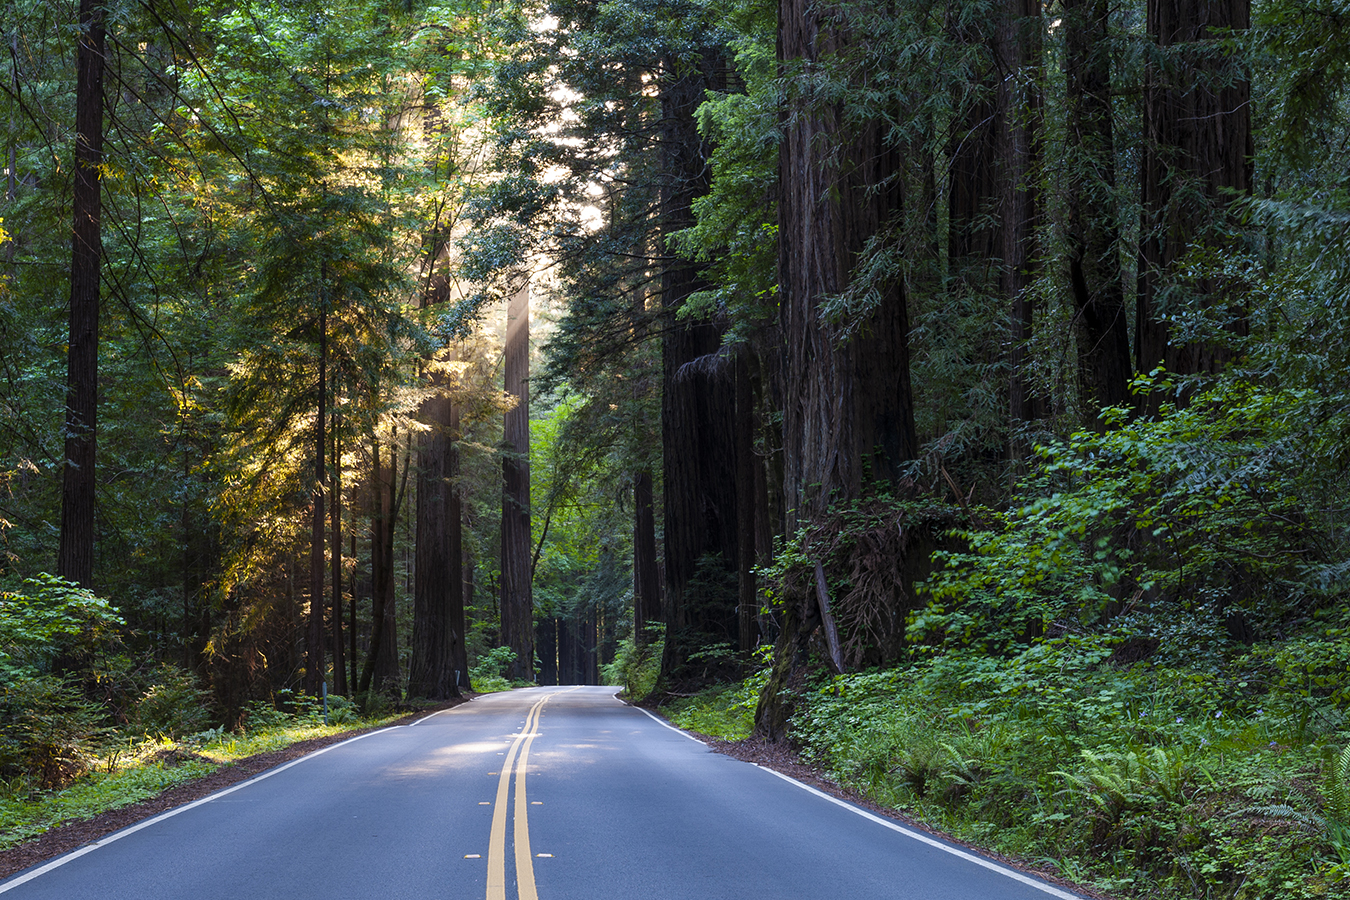 avenue of the giants - This aptly named 31.6-mile scenic highway stretches from just north of Garberville and continues through Scotia, providing the motorist with an up-close and personal experience with the ancient redwoods that line the Avenue. There are plenty of places to pull over and gawk, and redwood groves to stroll through. There are quaint small towns with shops featuring redwood art, artifacts and trinkets. Experience Humboldt Redwoods State Park containing the Rockefeller Forest, the world's largest contiguous old-growth forest of coast redwoods.The Avenue of the Giants is an adventure that everyone should experience. It is akin to other natural wonders of the world and accessible year-round. If you don't want to do the driving check out the Redwood Transit line, operating shuttles seven days a week!